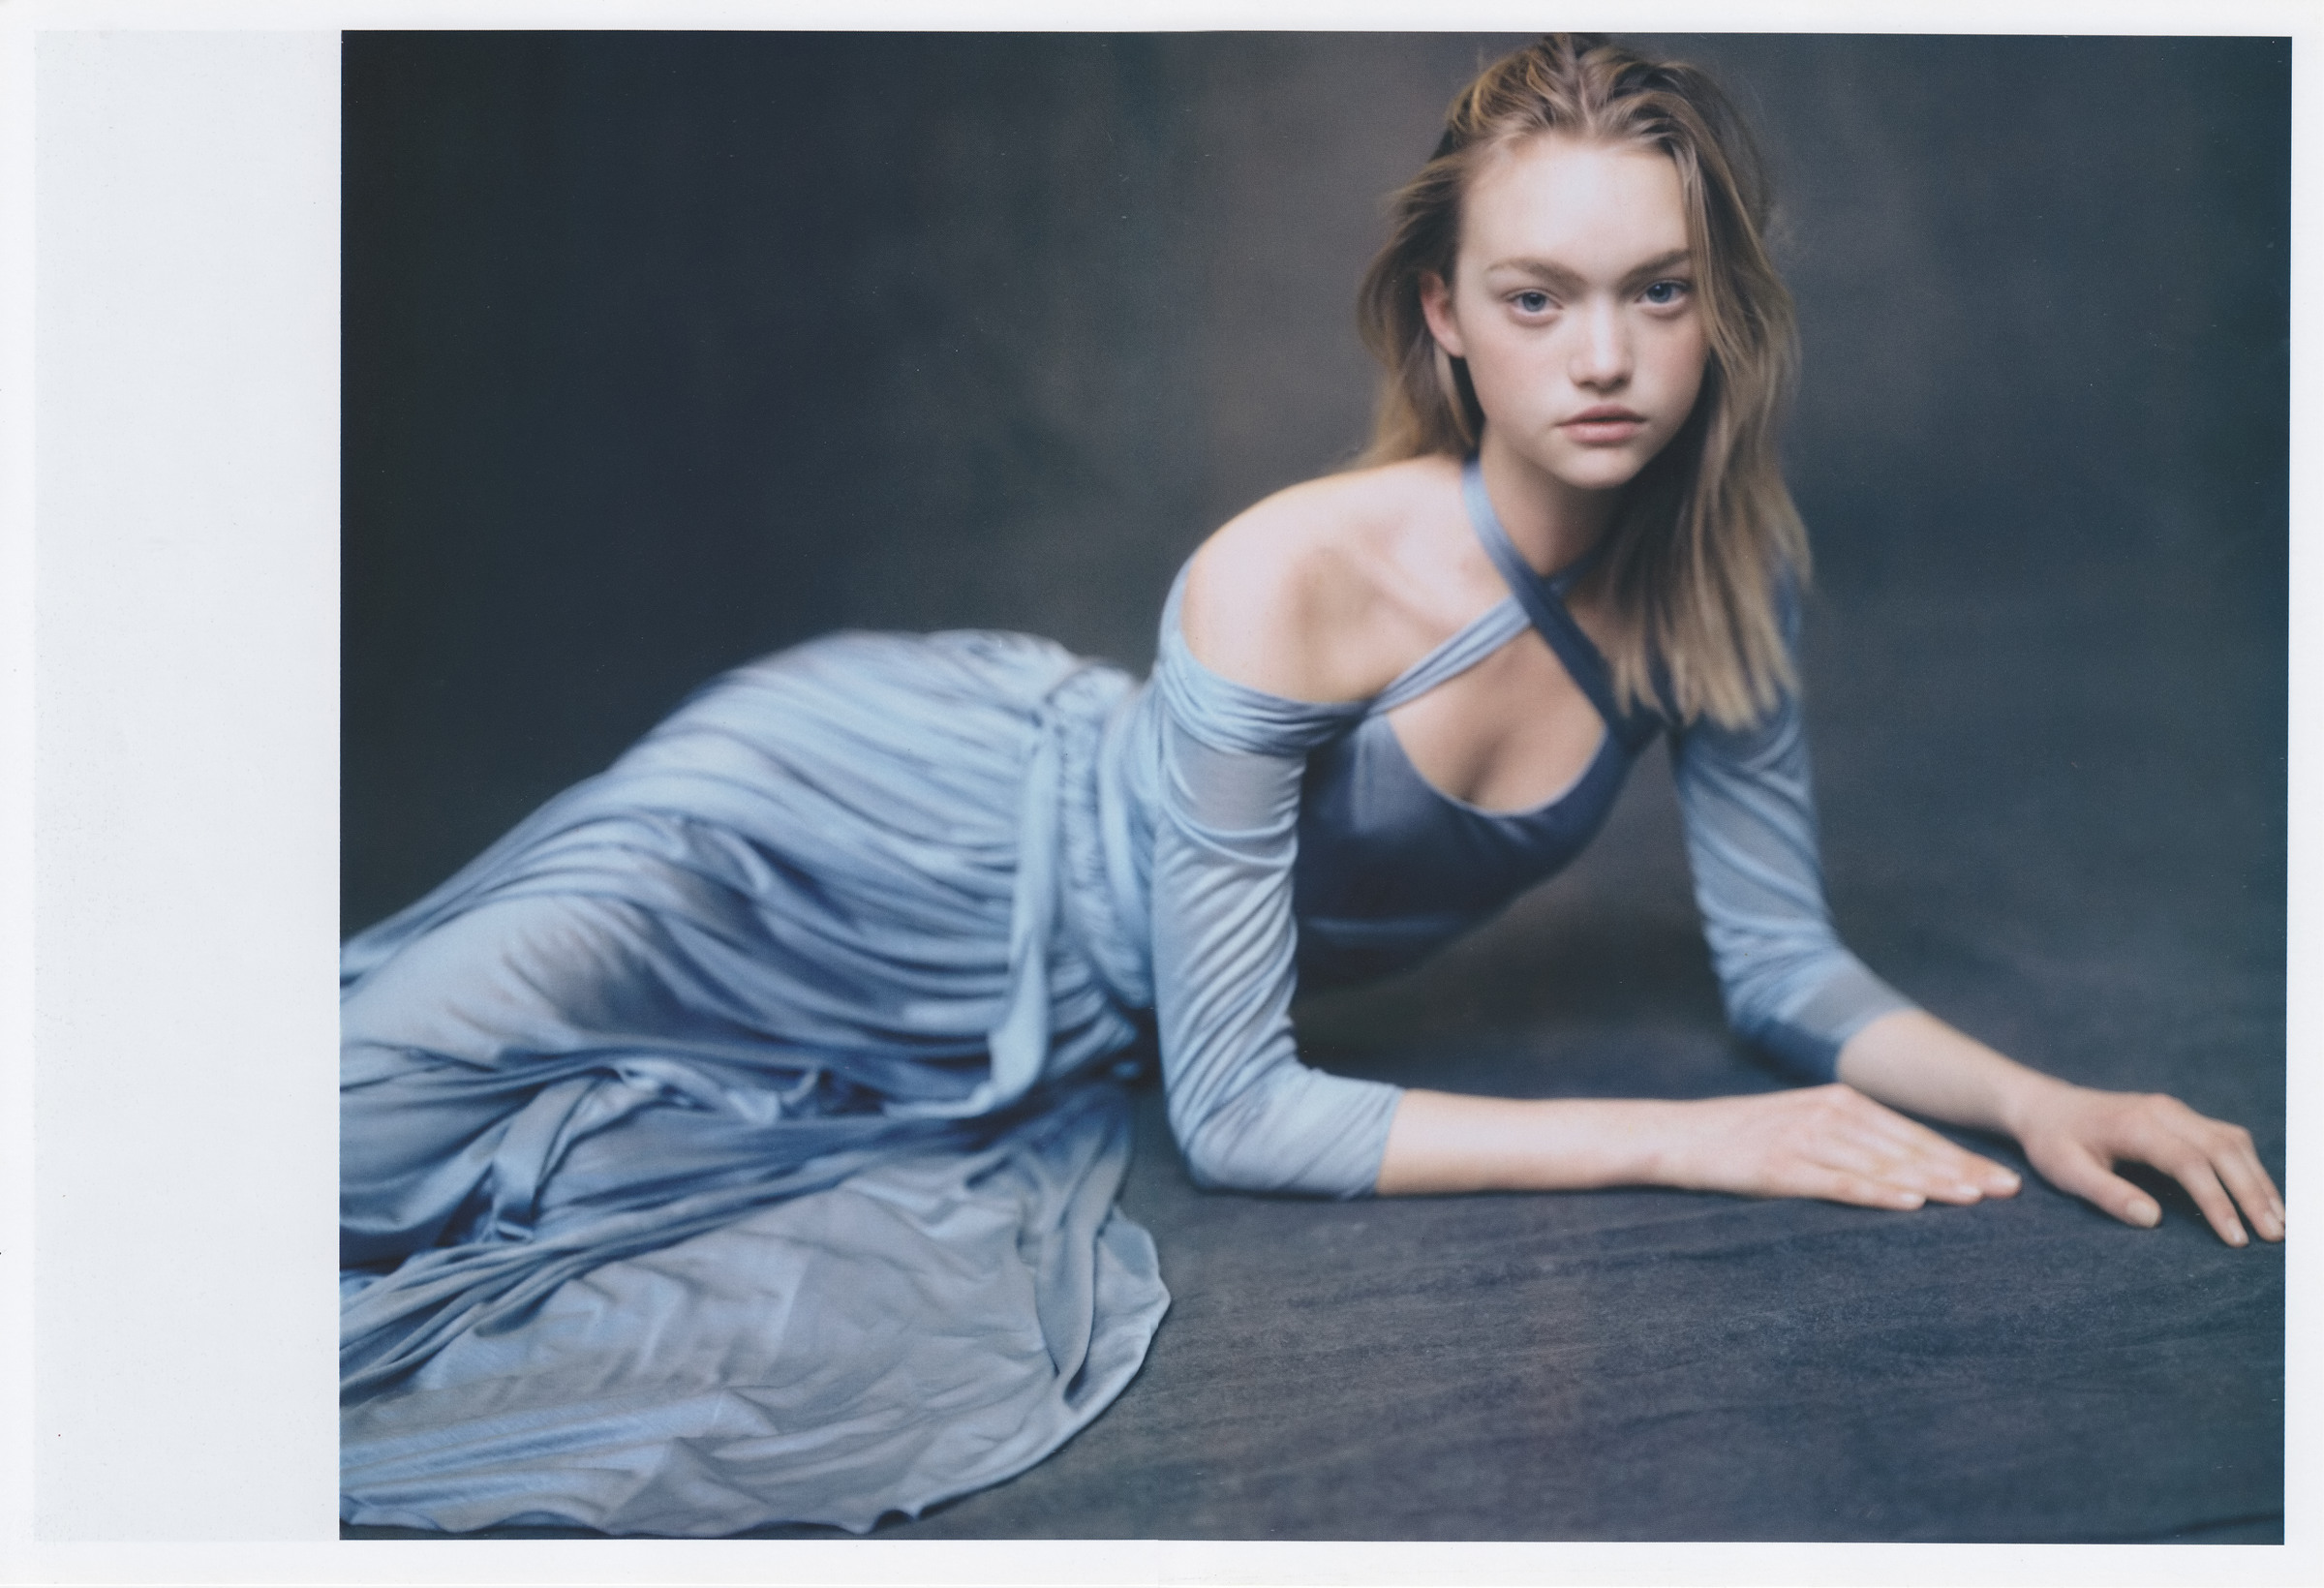 gemma ward instagram